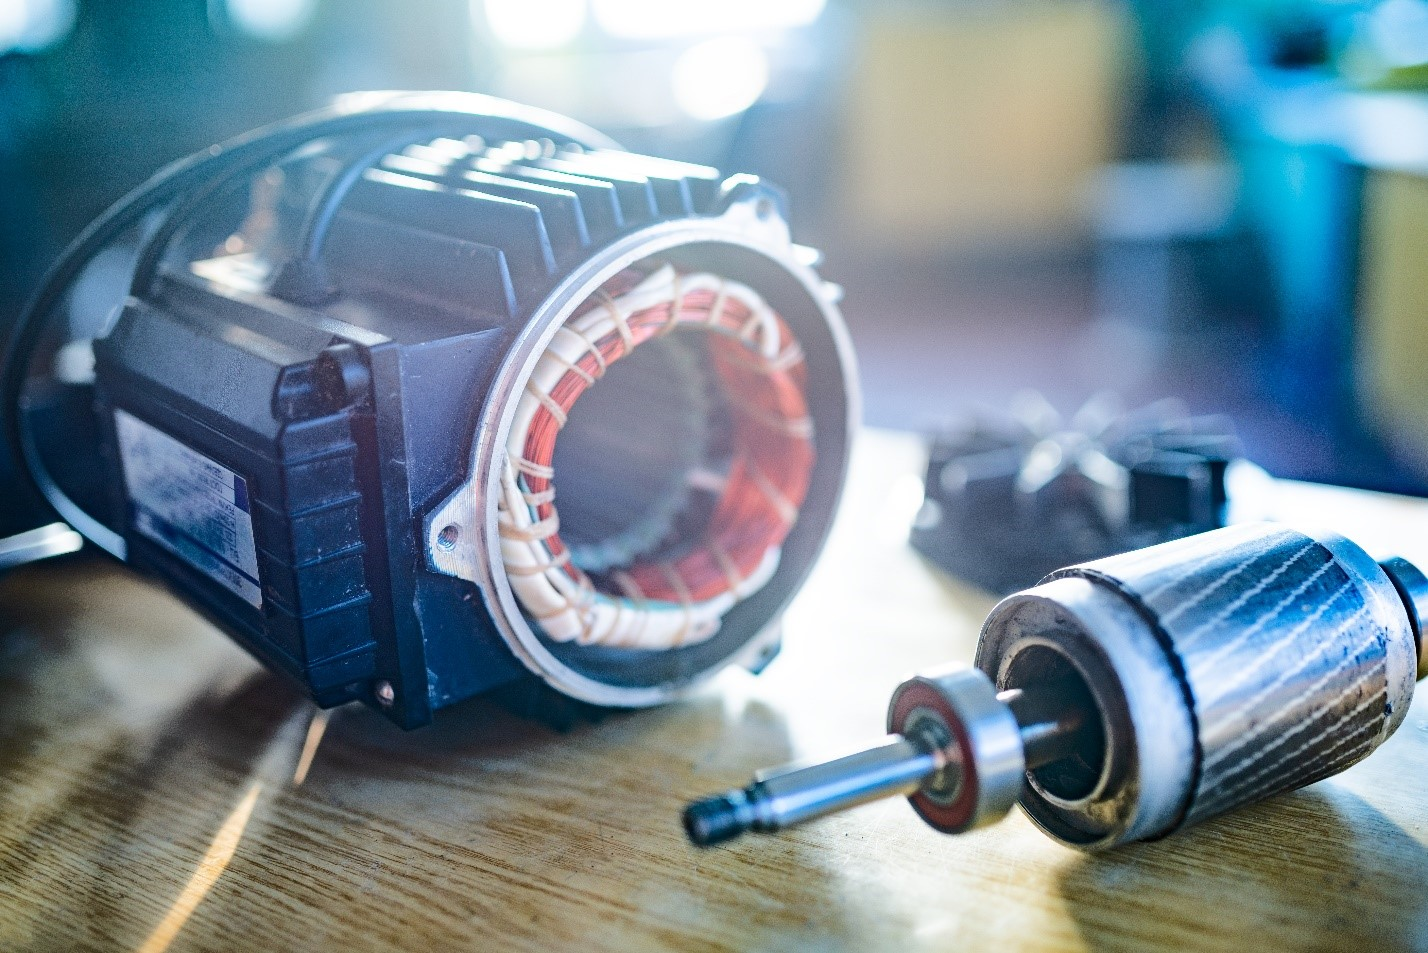 Turntide's electric motors promise to cut the energy electric motors use in half